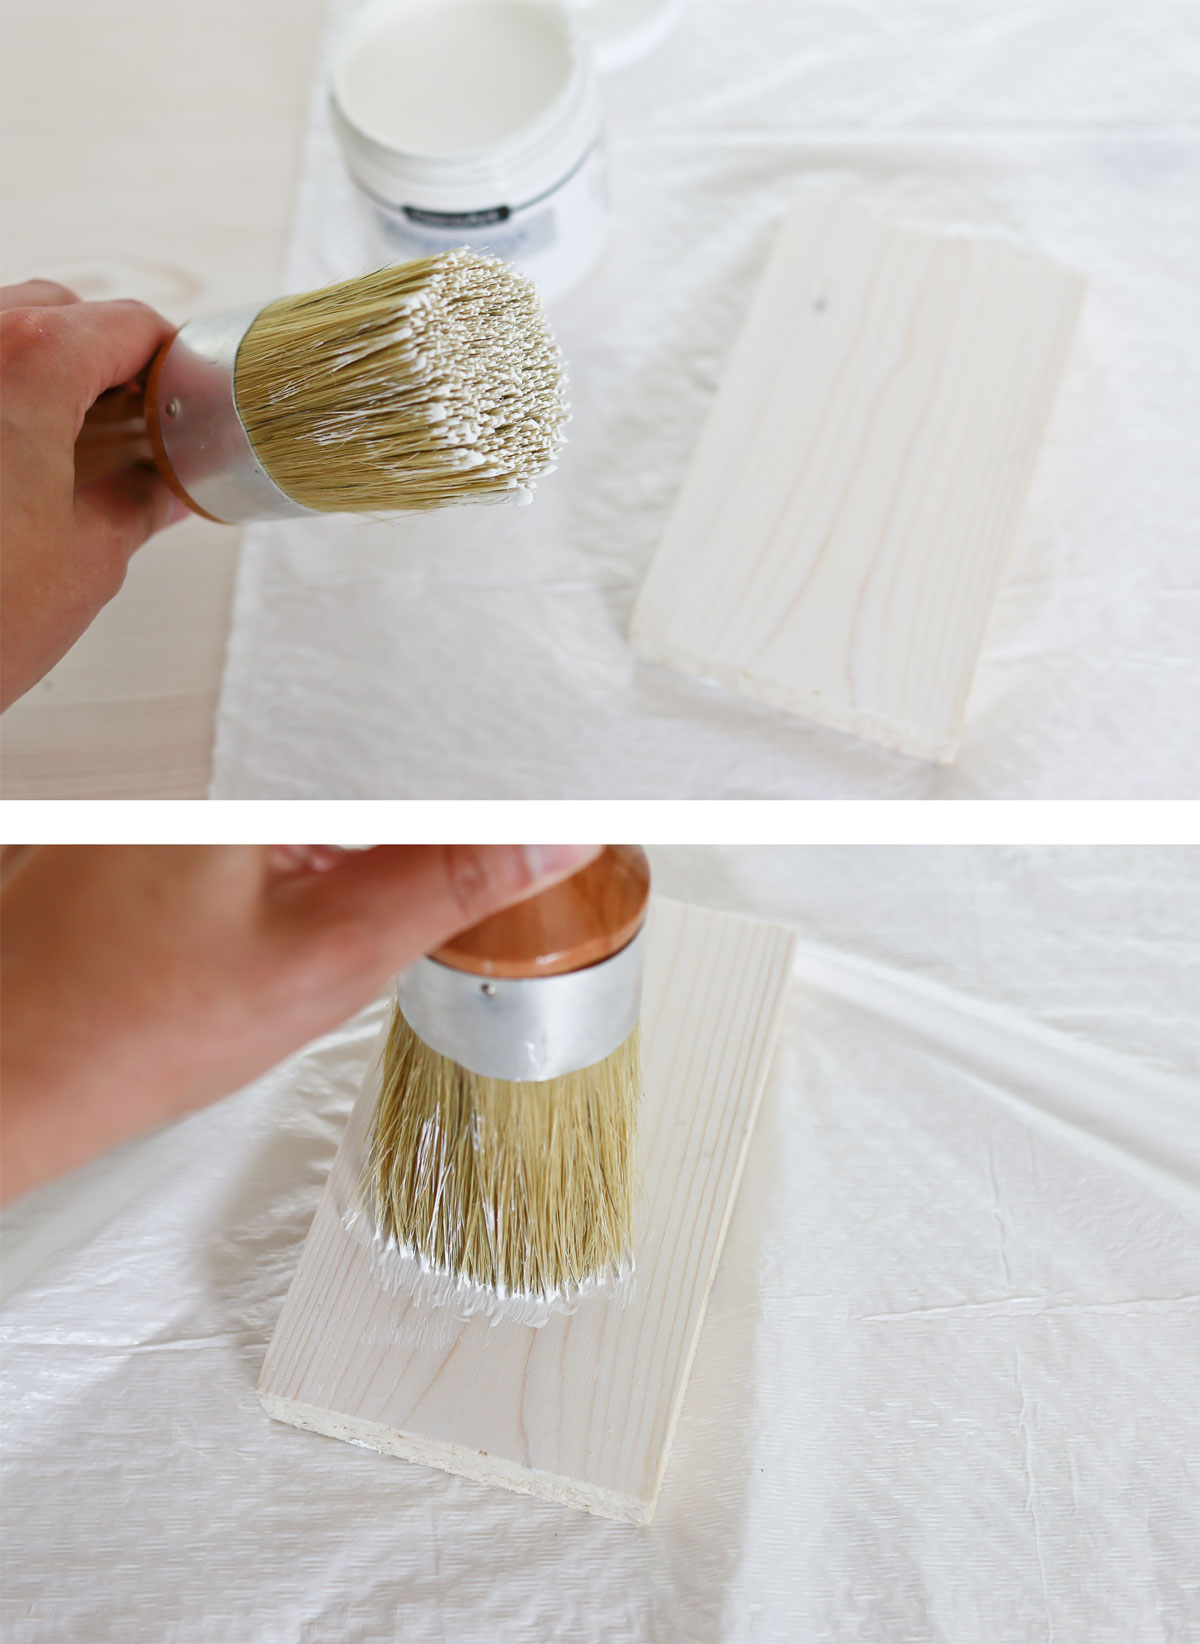 How to apply a white wax on pine wood.